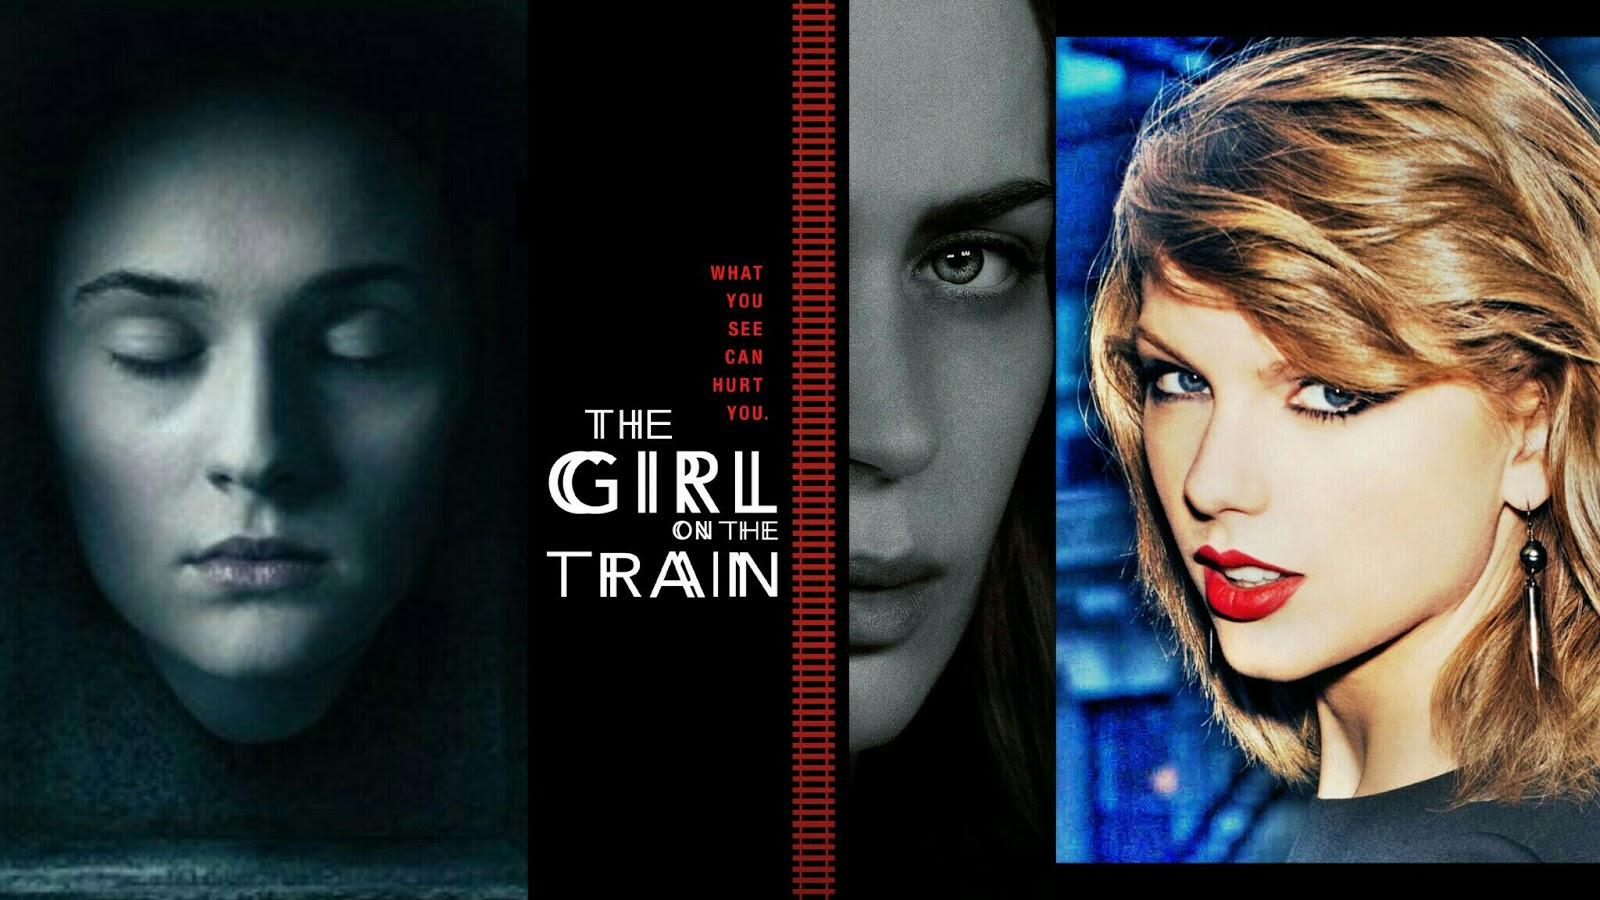 Eclectic Pop Top 10 Most-Read Posts - Game of Thrones, The Girl on The Train, Taylor Swift